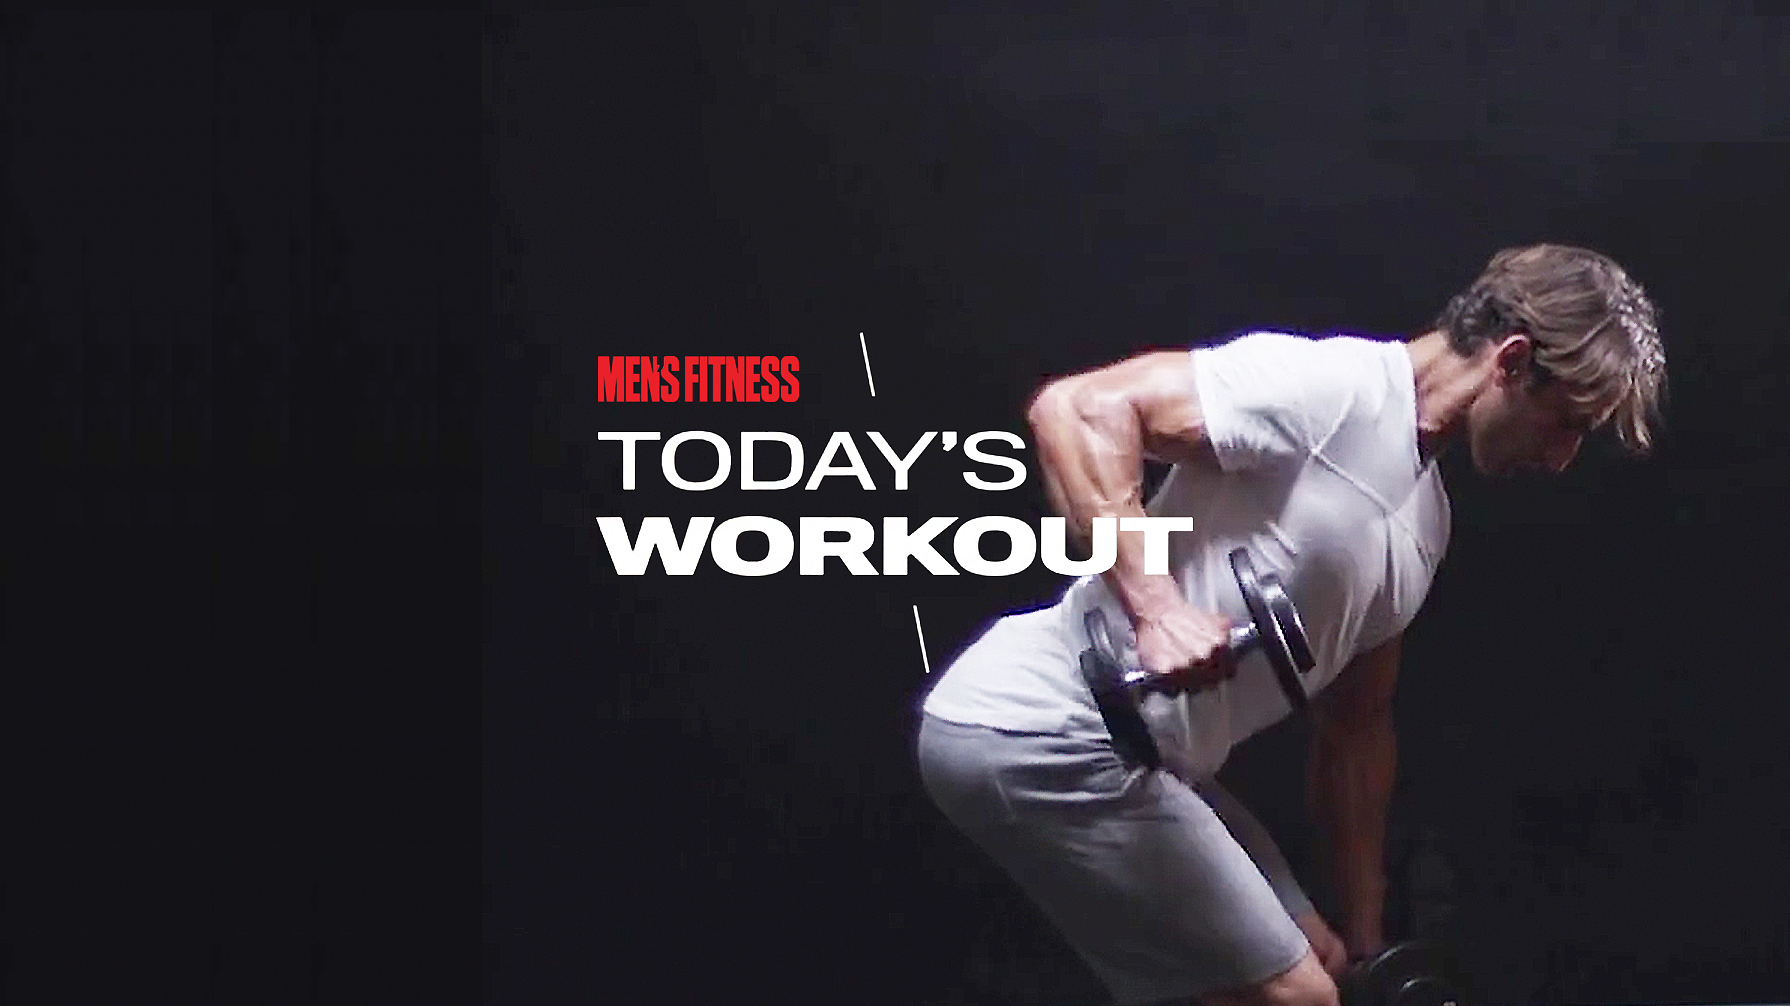 Today's Workout 28: The 4-move circuit for massive pecs